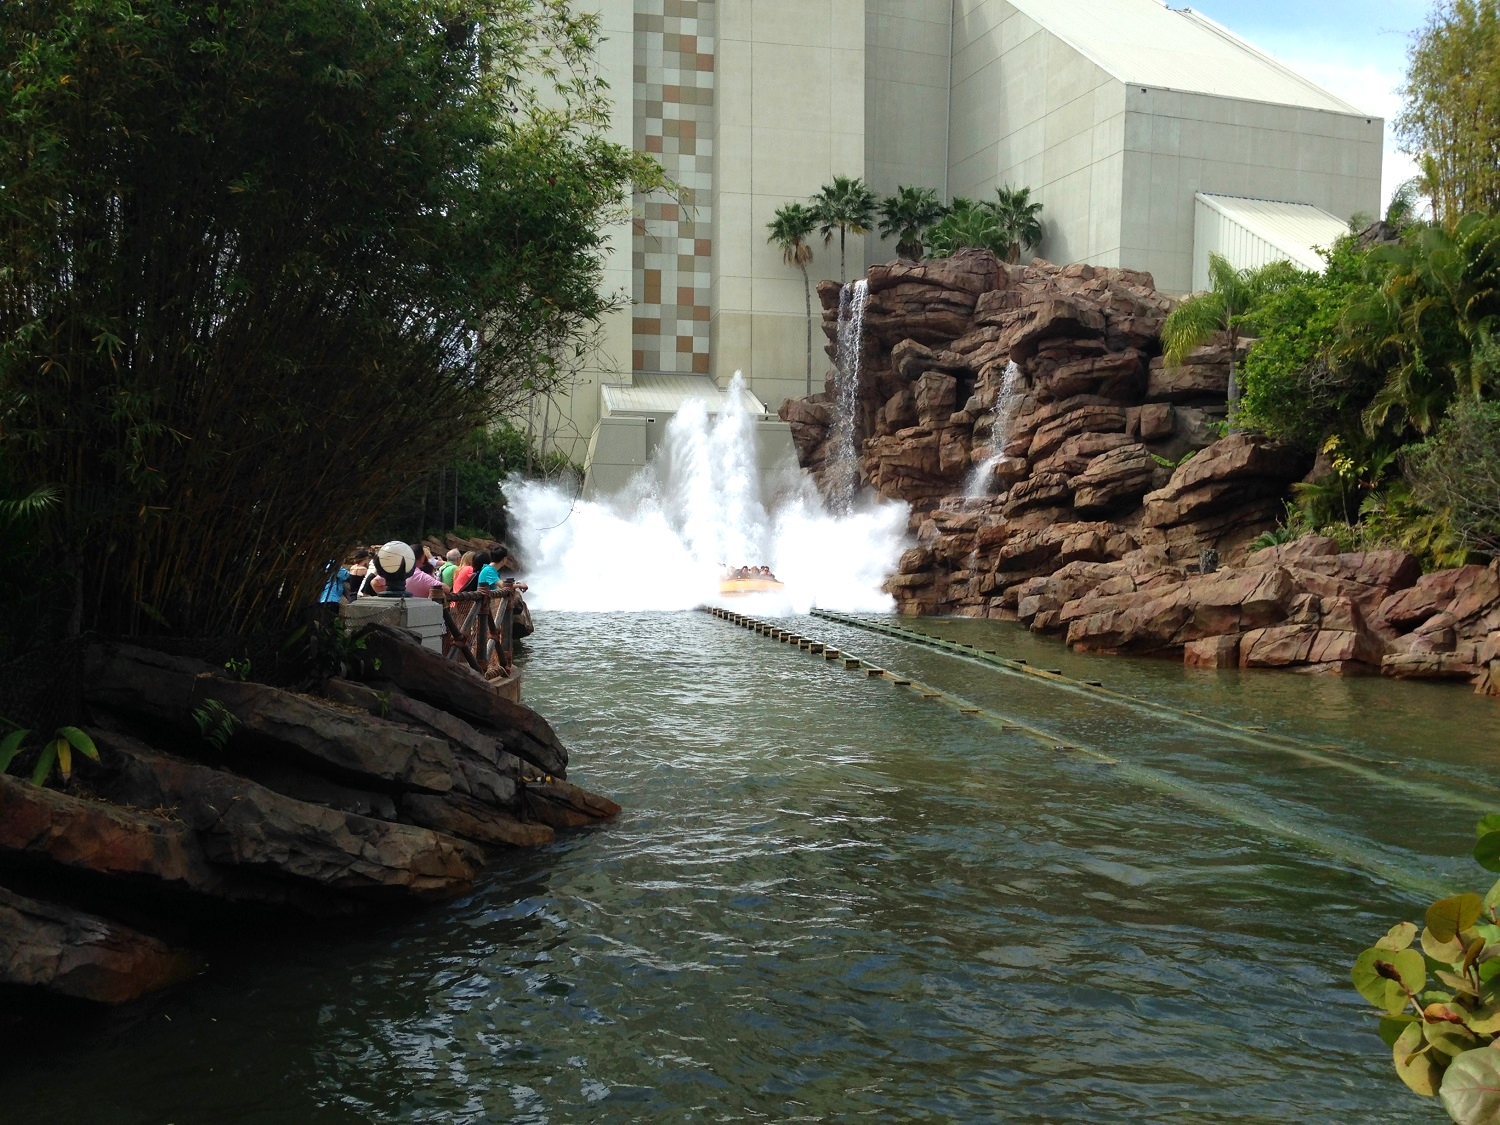 The Jurassic Park River Adventure riders fall from 85 feet into a pool of water at the bottom.